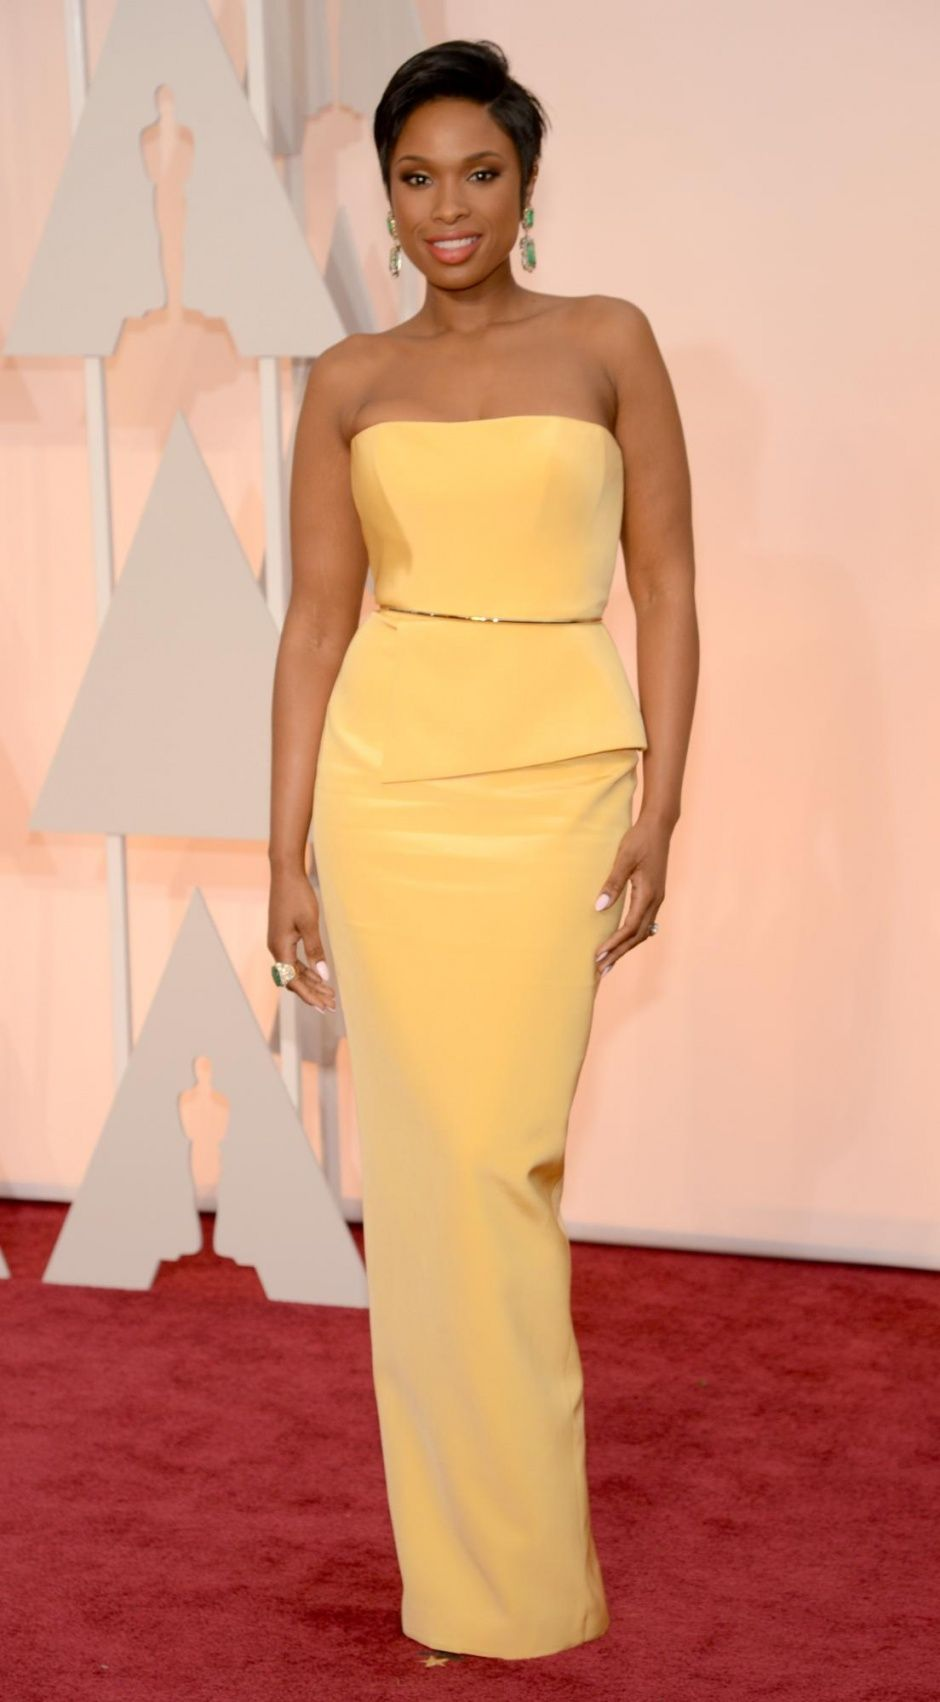 Pin on Red Carpet Fashion and Beauty